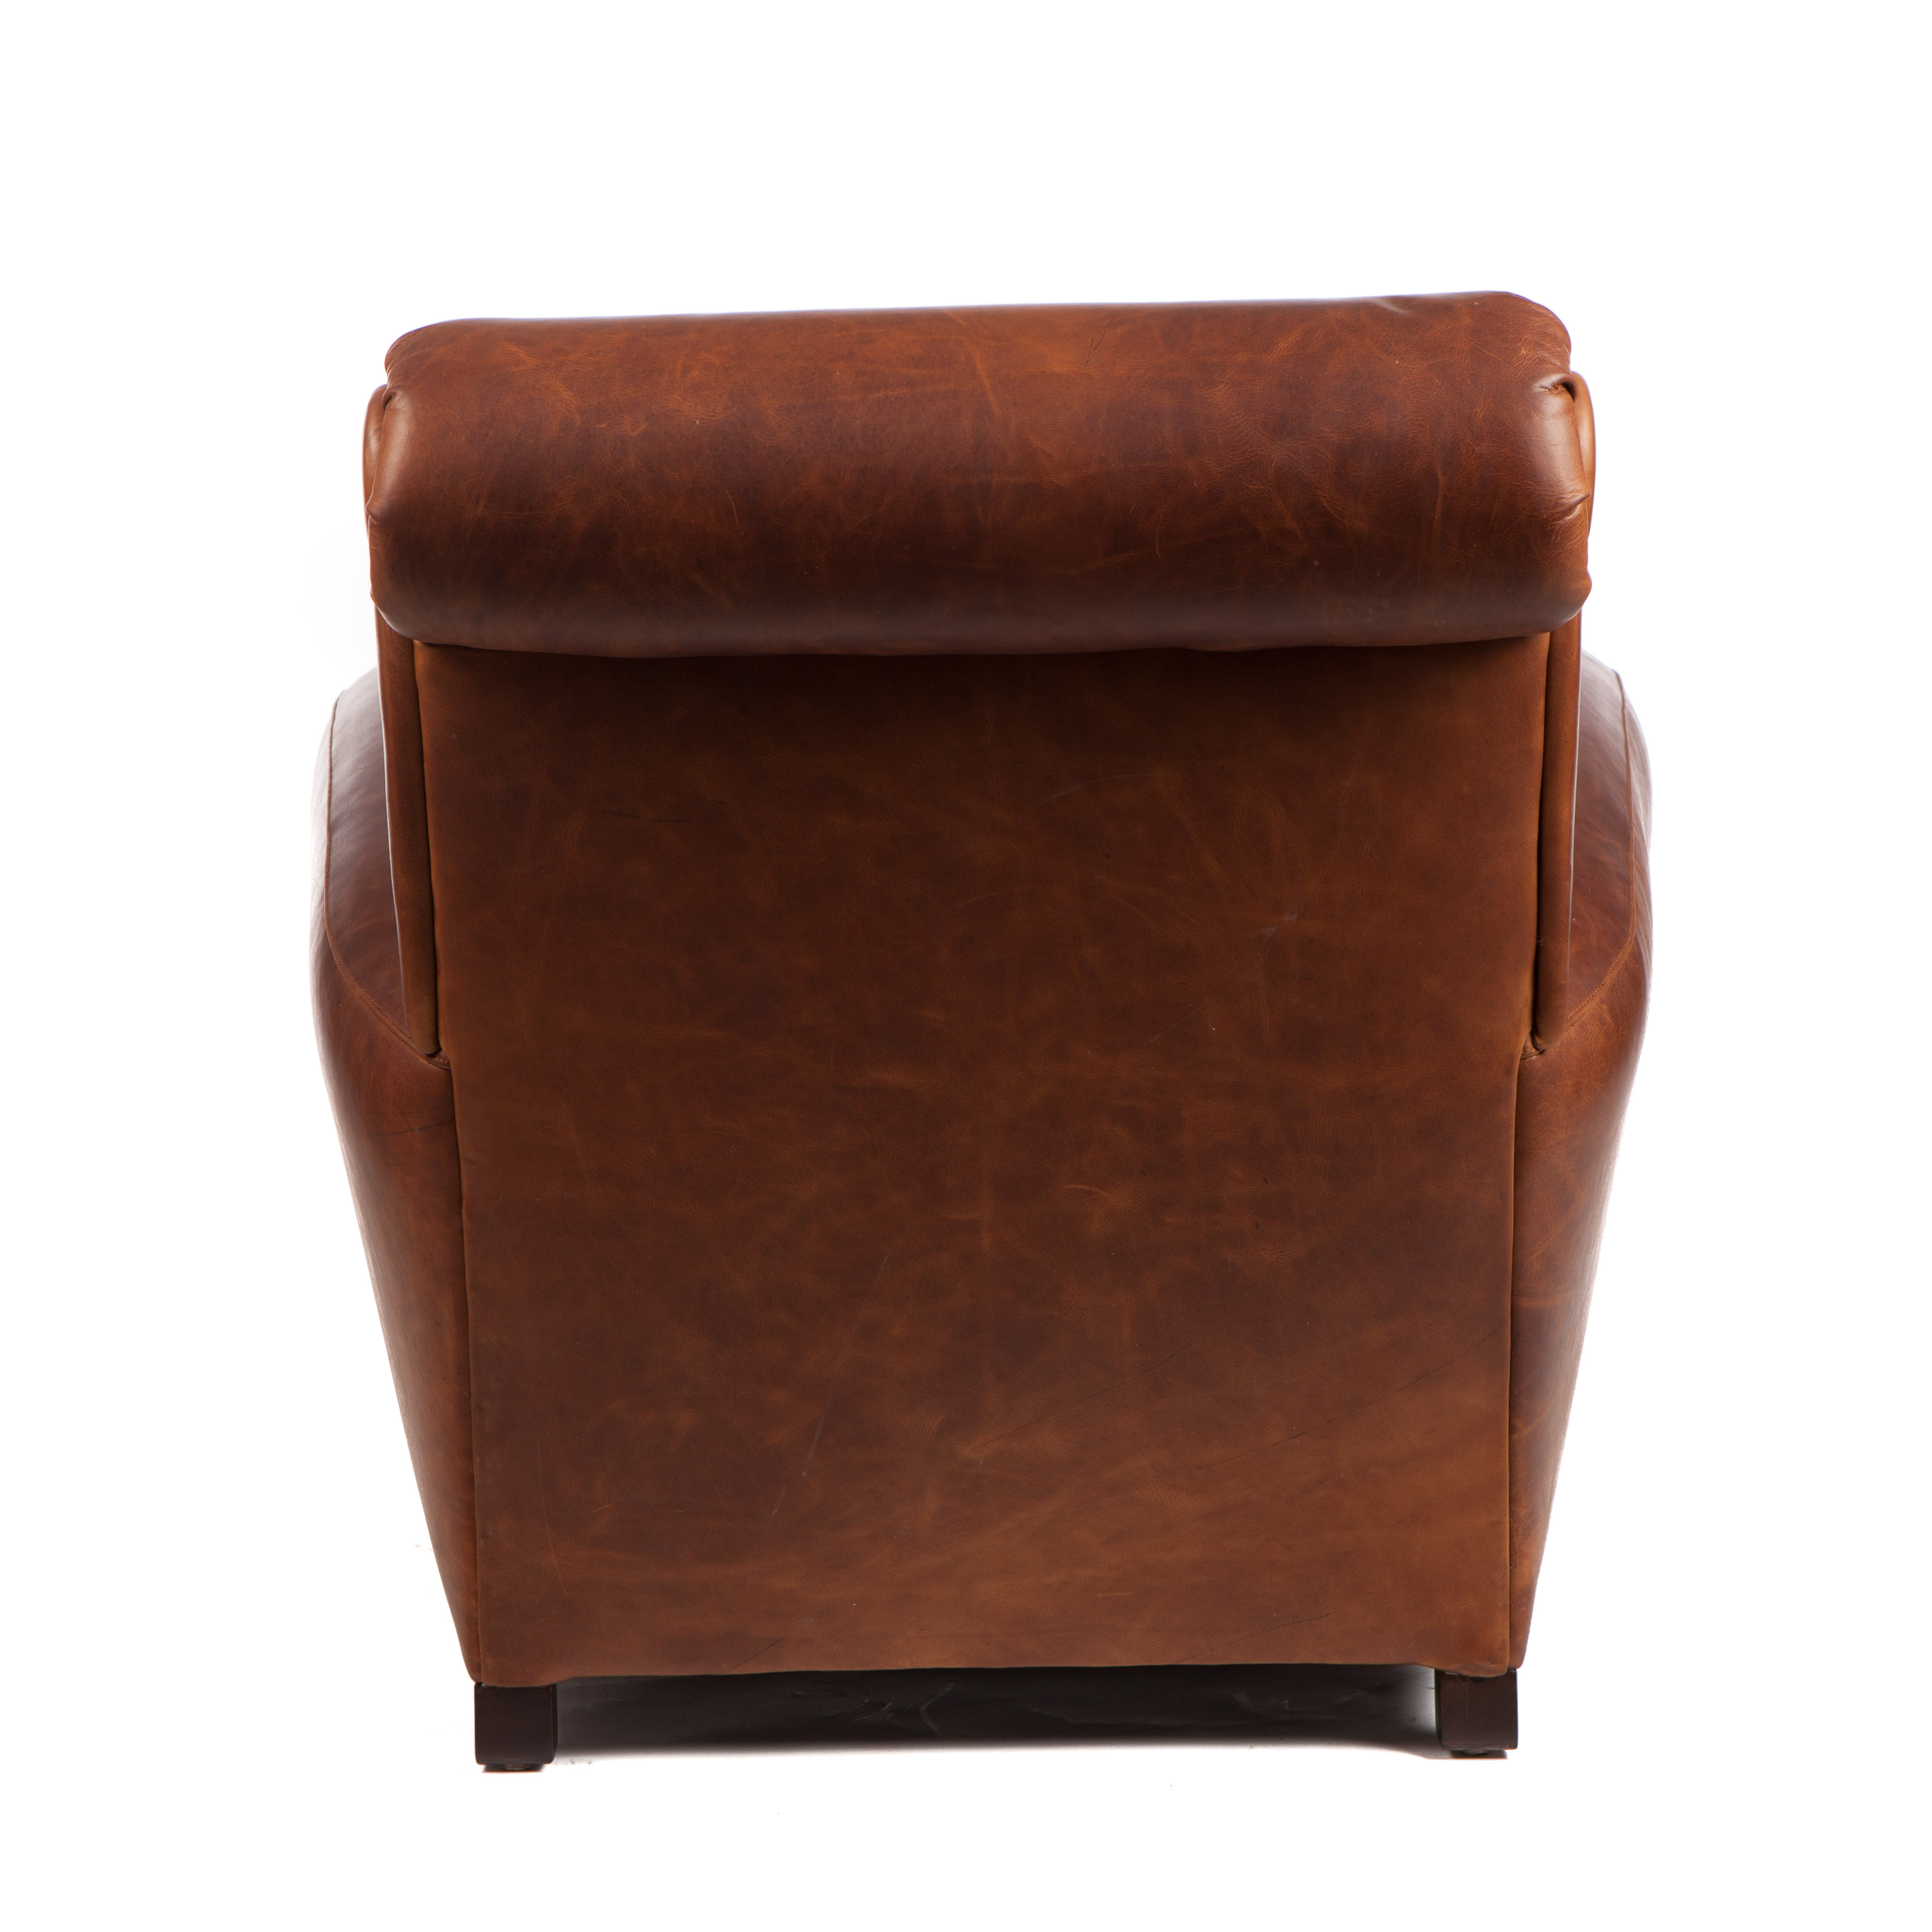 Moore & Giles Traynham Club Chair Leather No 1 in Sonoma Toffee